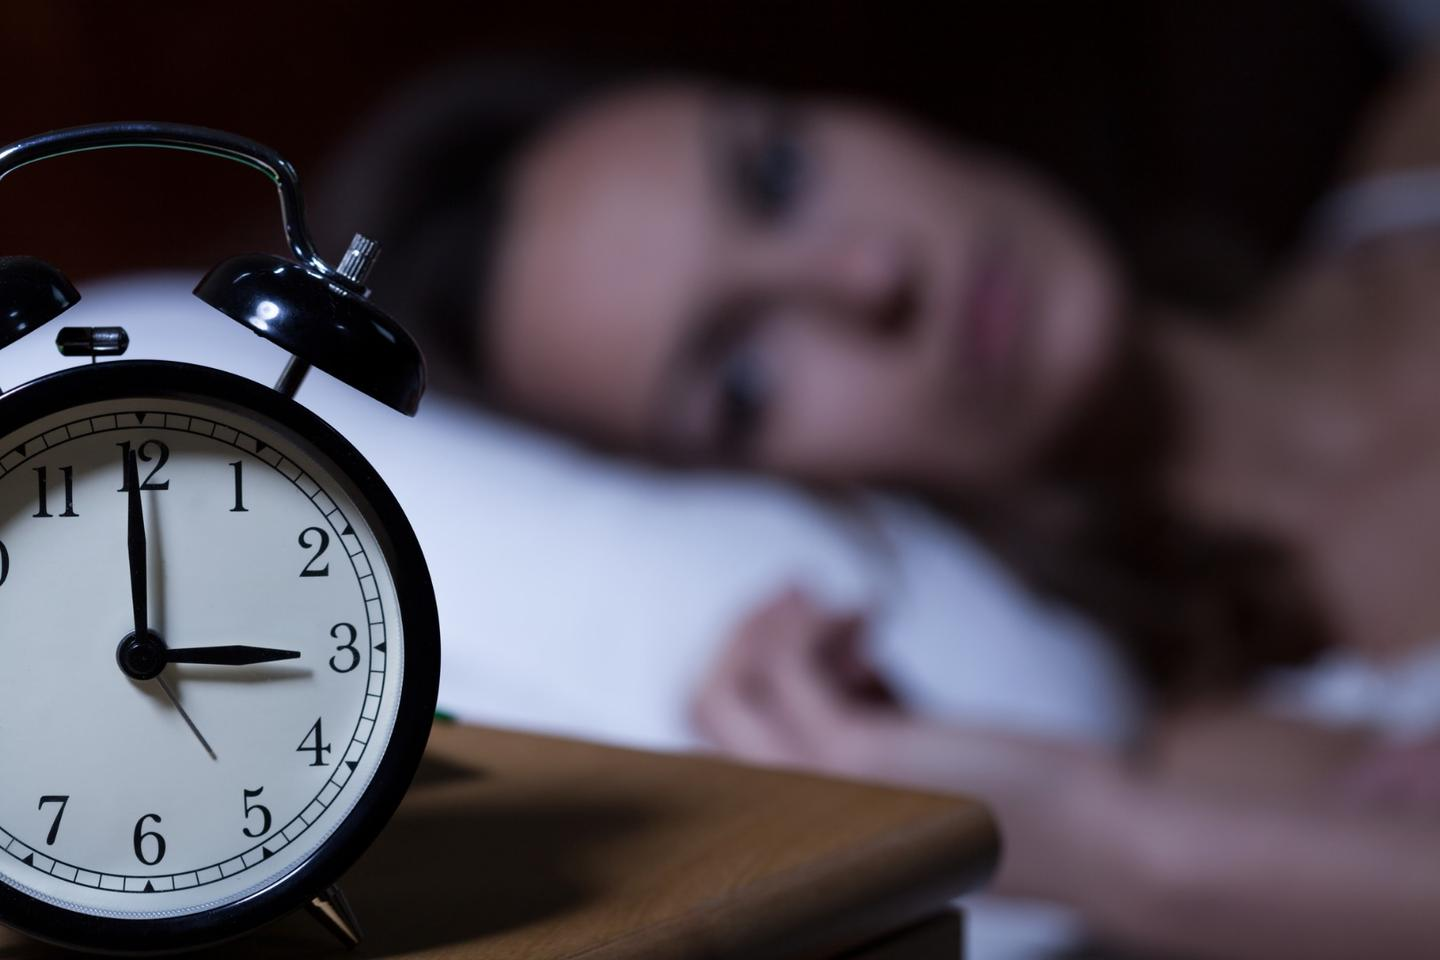 A new study solidifies the link between sleep disruption and an increase in the toxic proteins that are thought to contribute to the onset of Alzheimer's disease